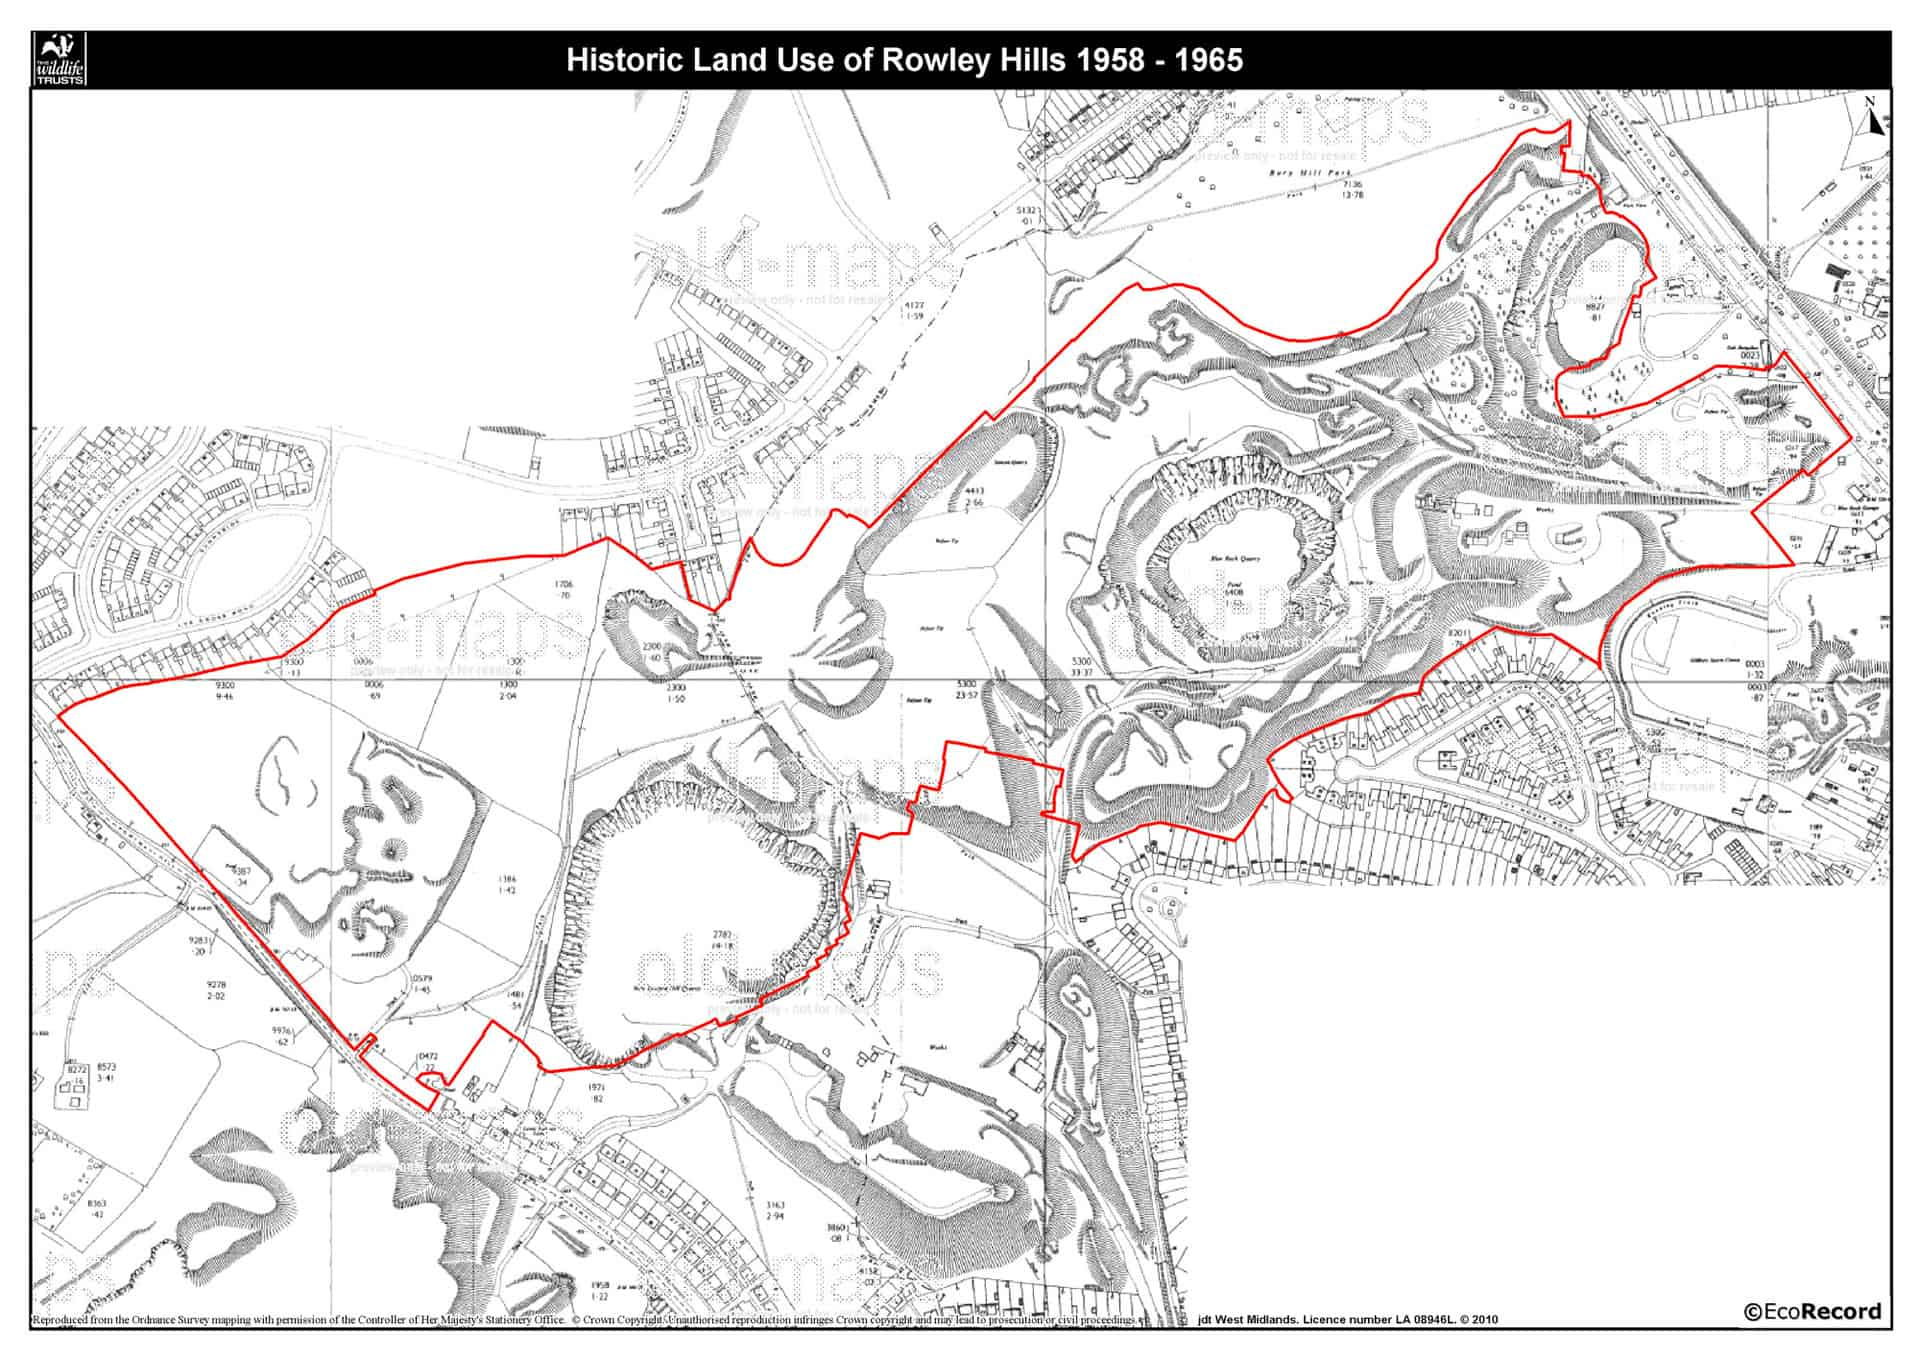 1958-1965 Map of Rowley hills